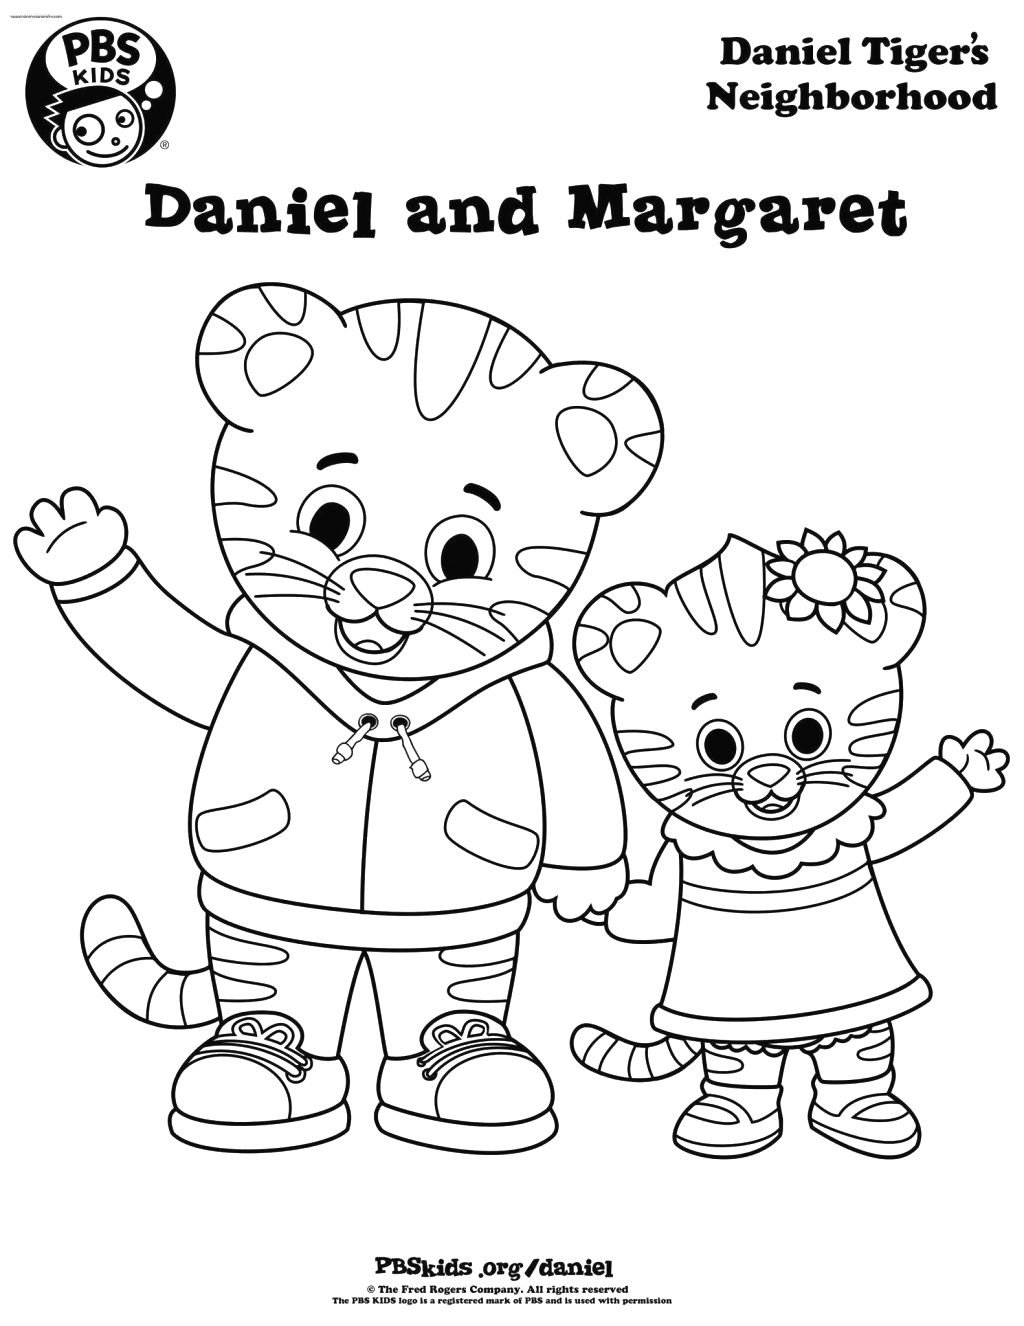 Printable coloring pages daniel tiger - Daniel And Margaret Daniel Tiger Coloring Pages